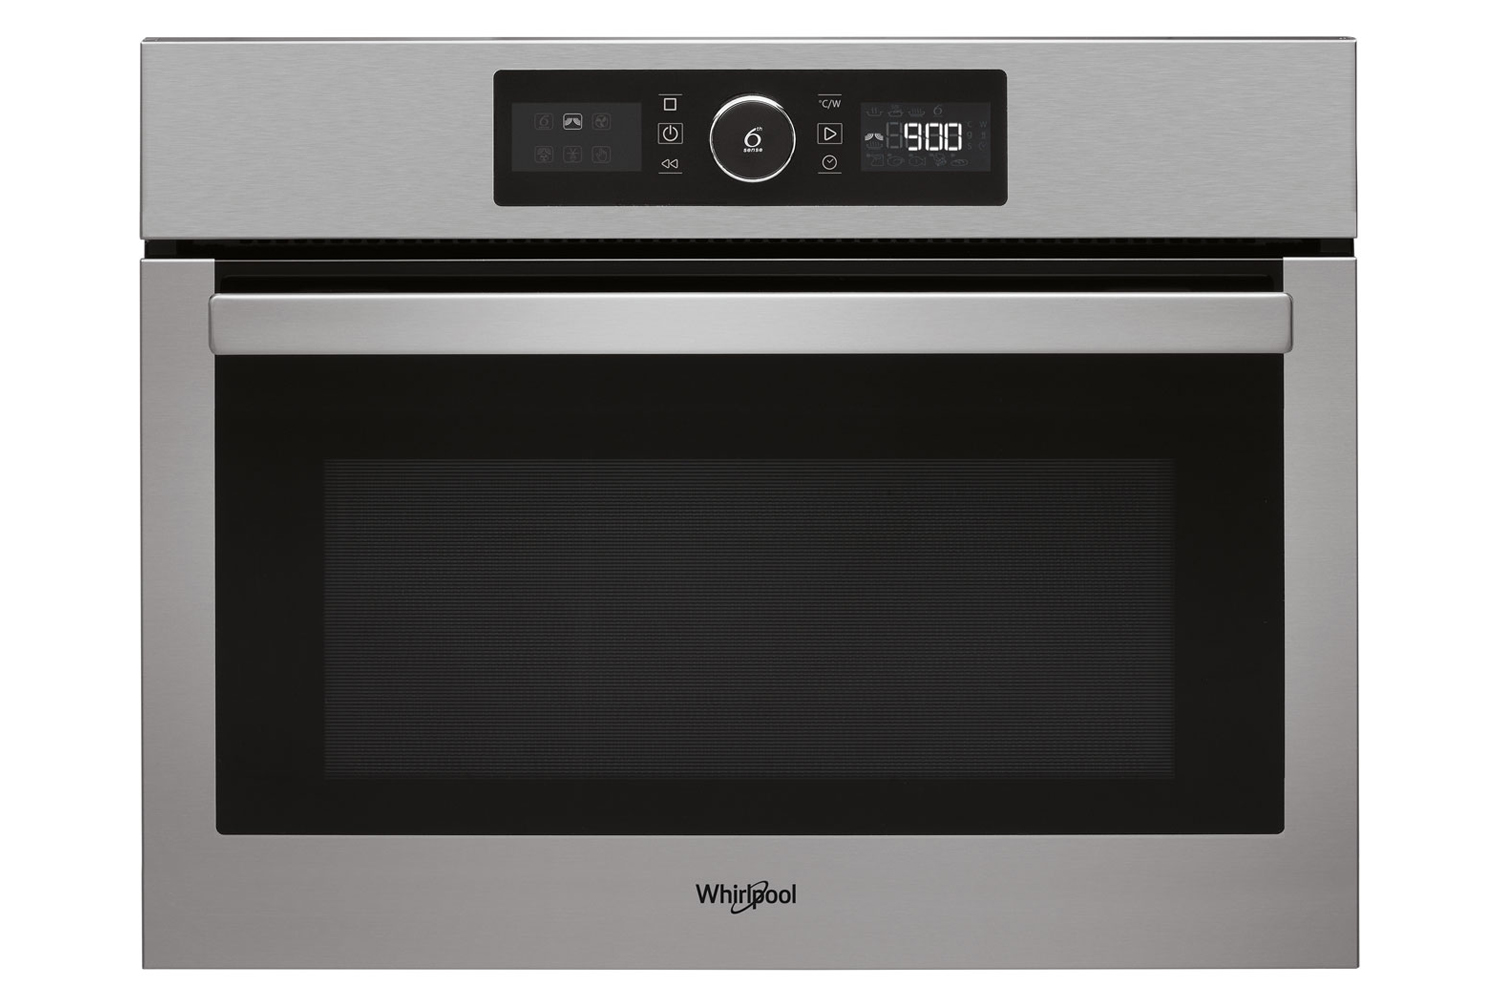 whirlpool 40l 900w built in microwave oven amw9615 ixuk stainless steel